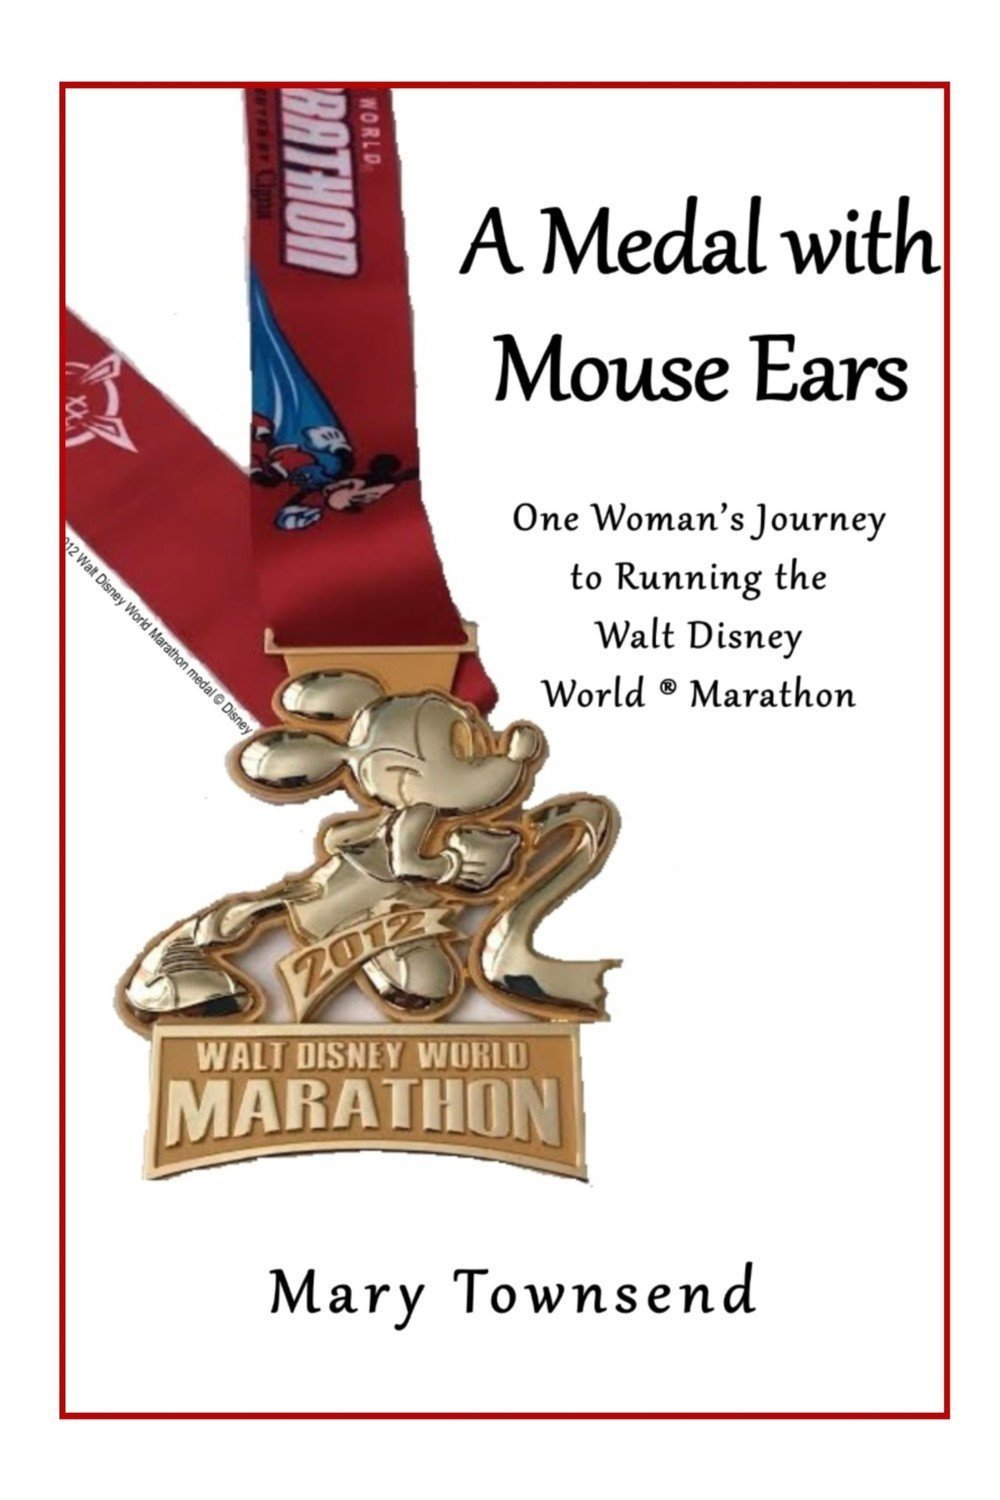 Medal with Mouse Ears: One Woman's Journey to Running the Walt Disney World Marathon - Motivational